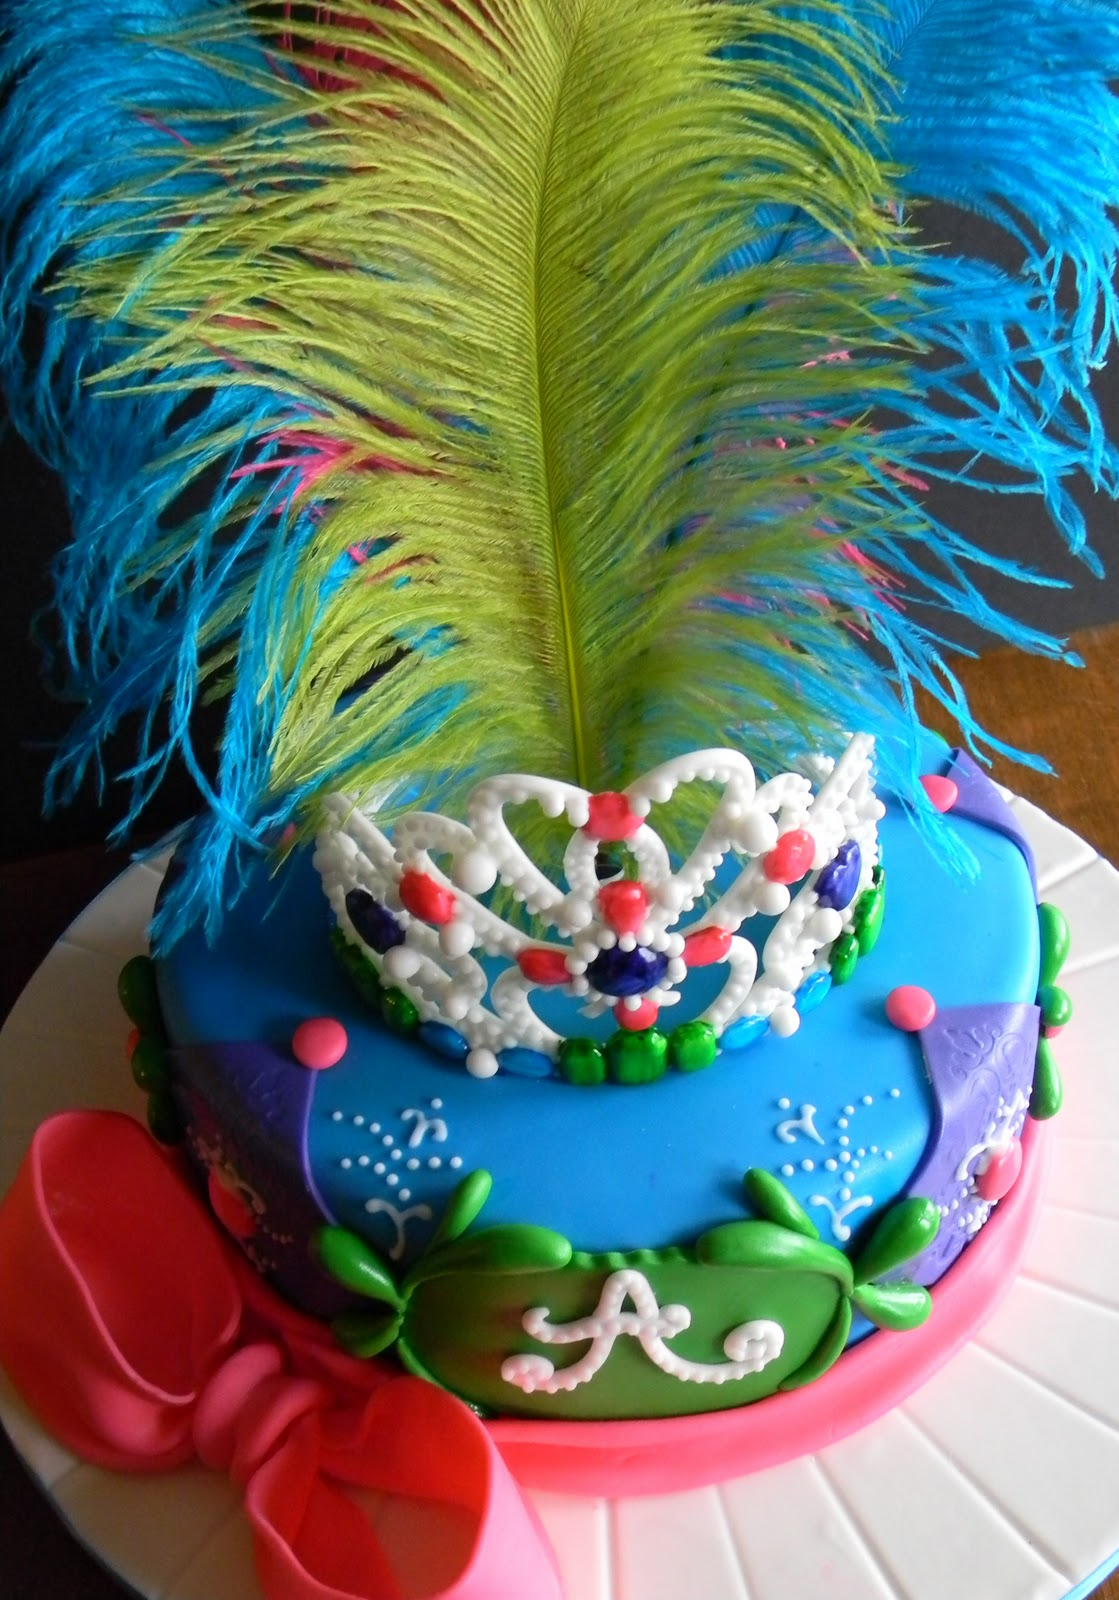 Couture cakes by angela specialty cake gallery - Decoracion de carnaval ...